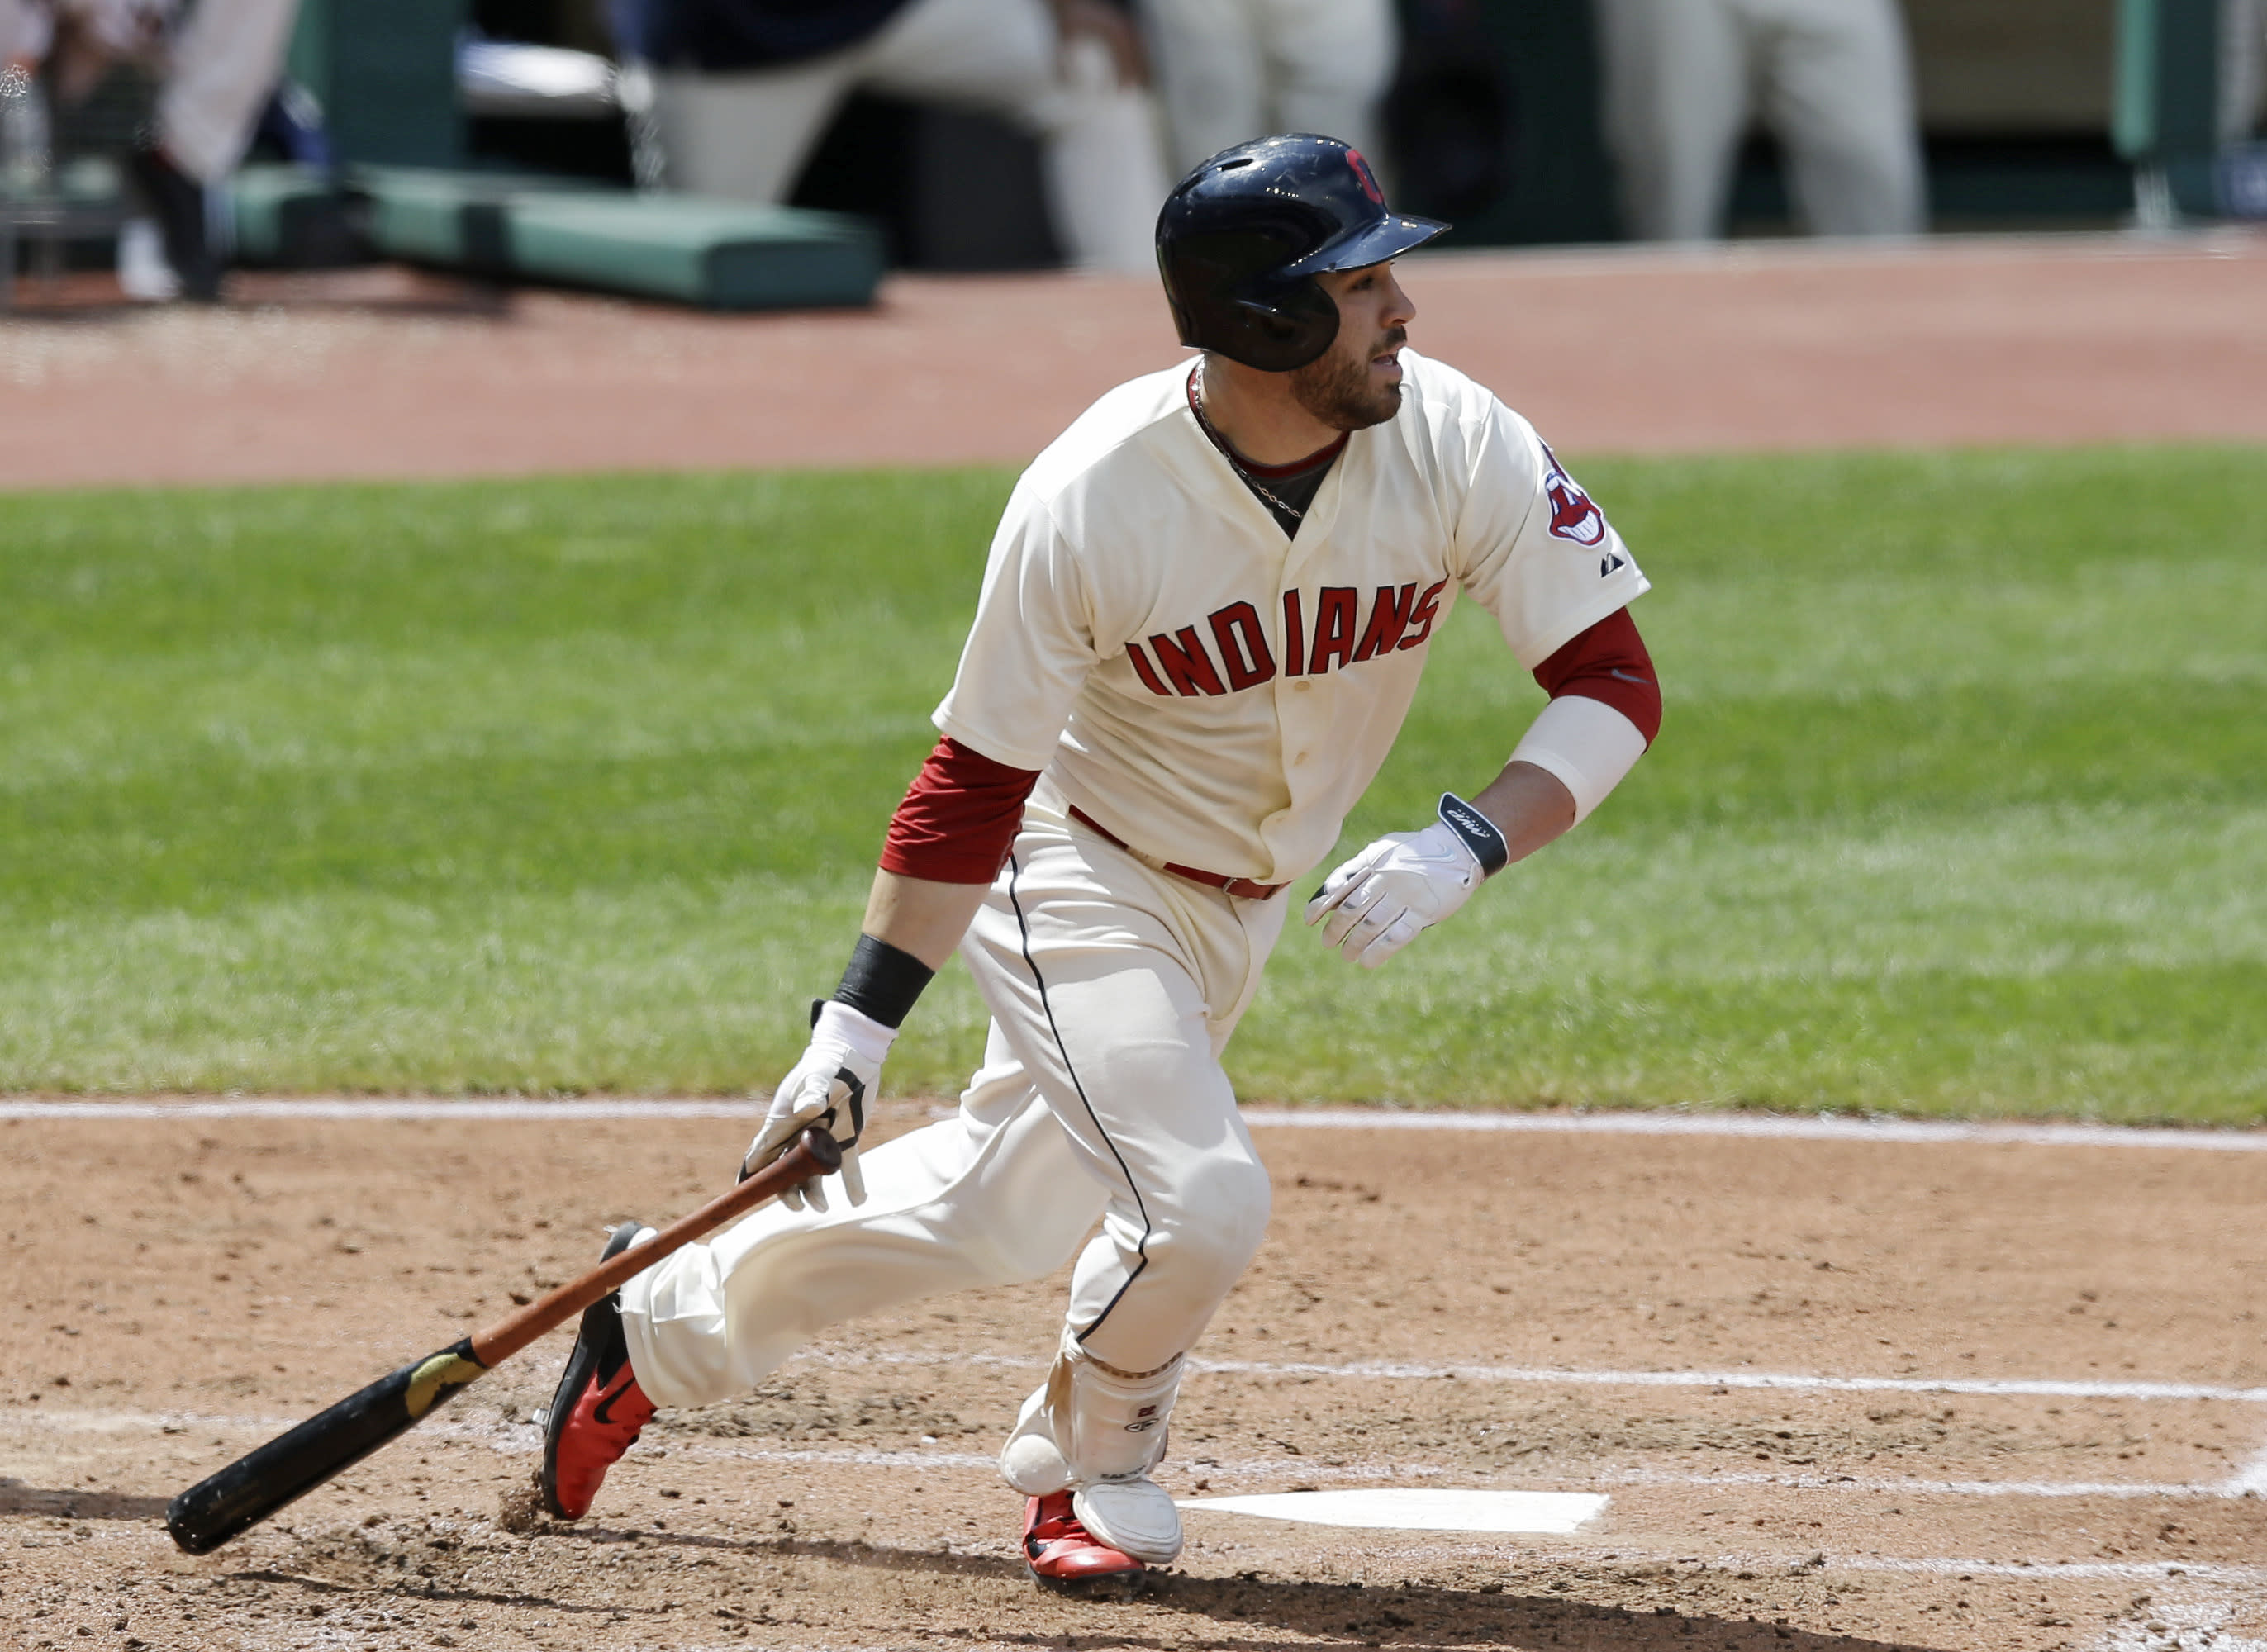 Indians second baseman Kipnis has finger surgery